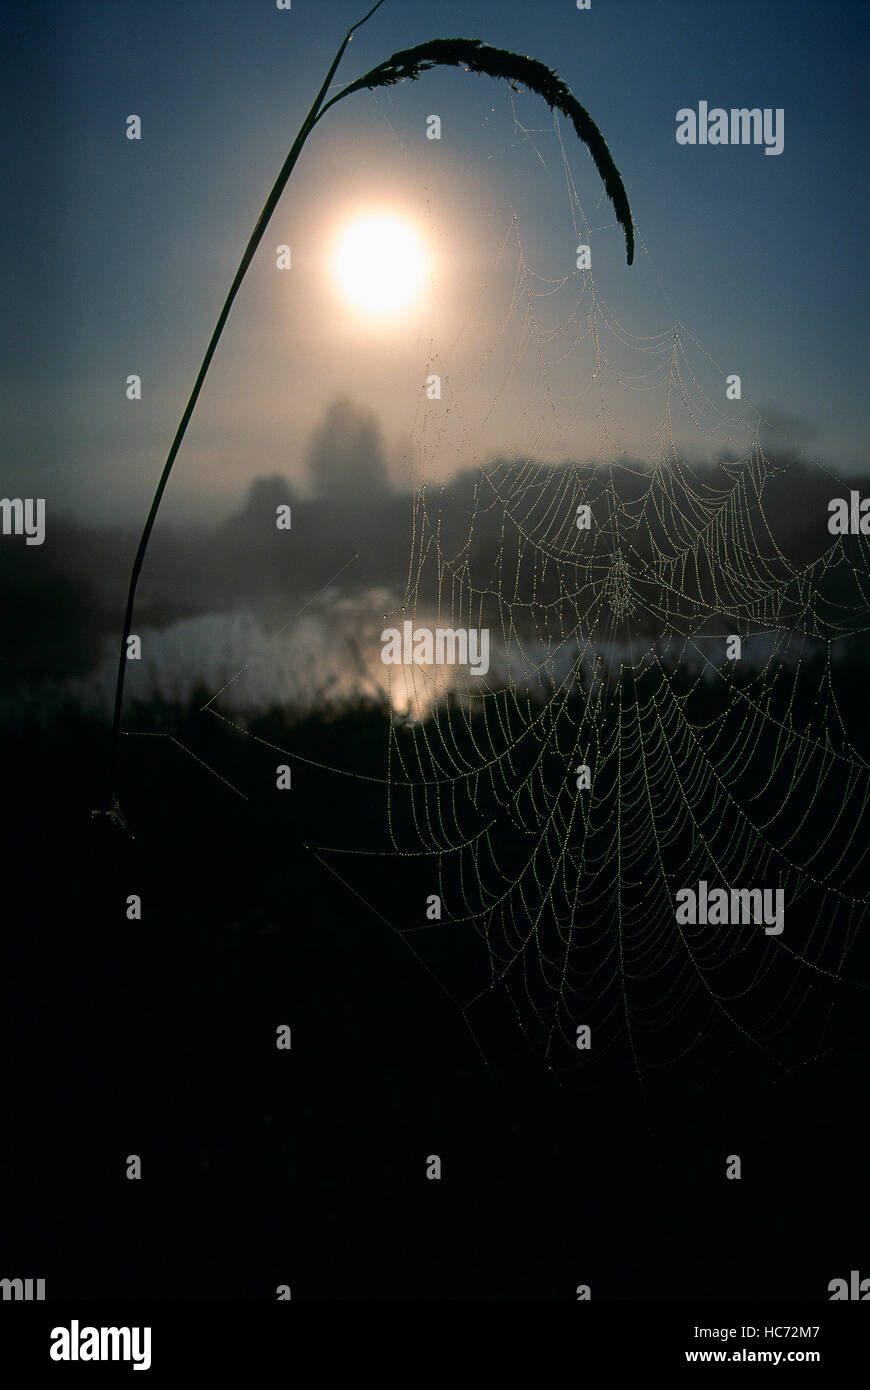 Spider Web and Seed Head covered in Early Morning Dew - Stock Image